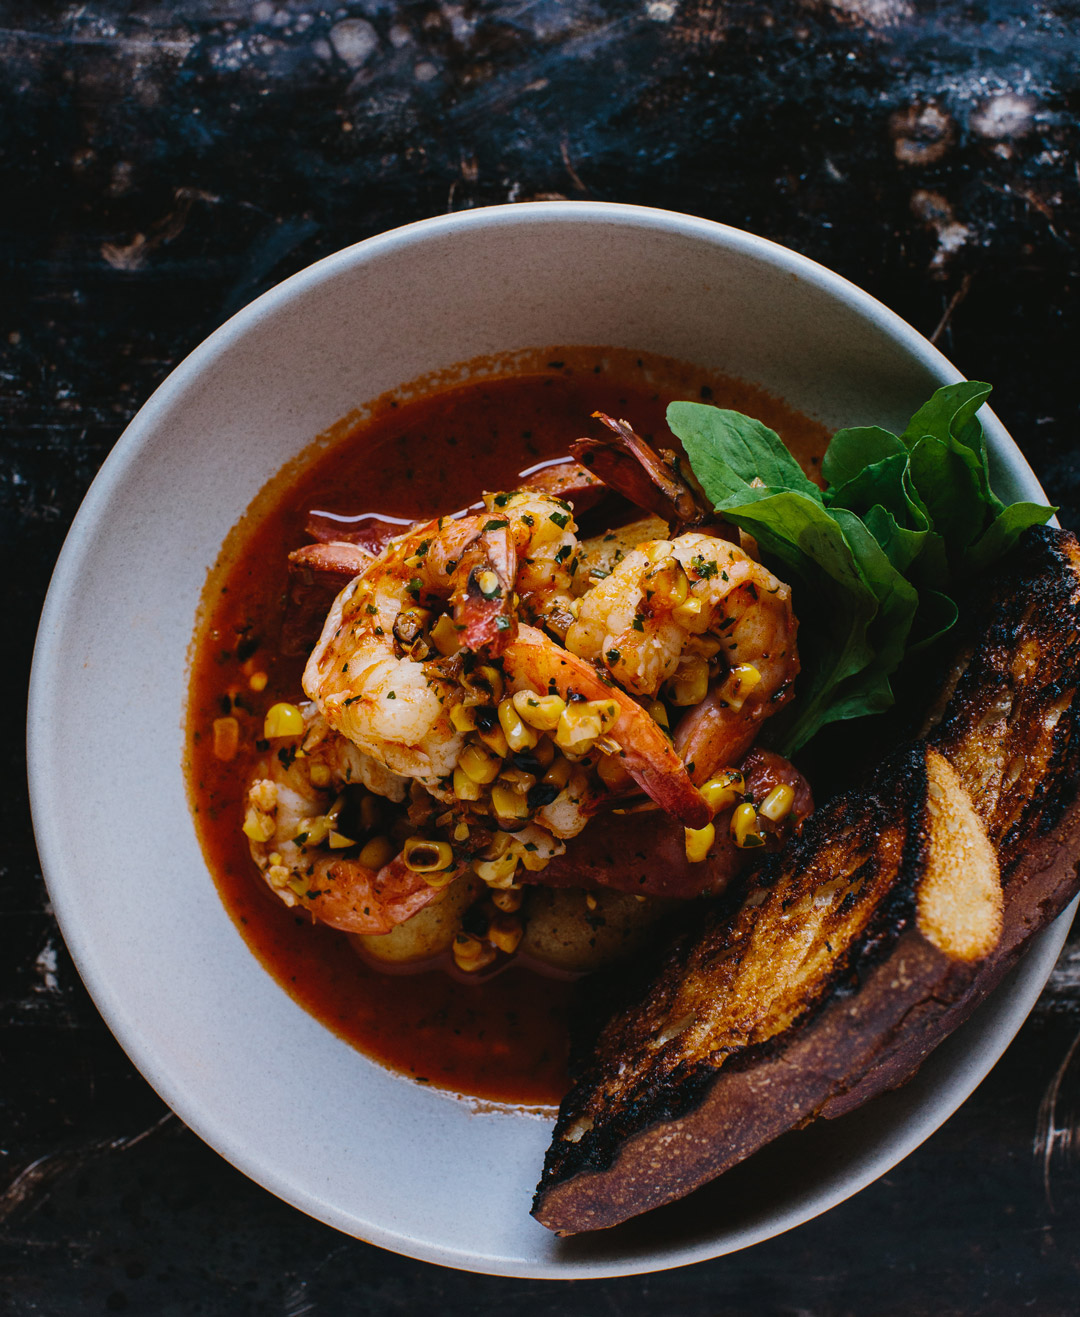 10 Best Restaurants in Athens: Five and Ten, frogmore stew